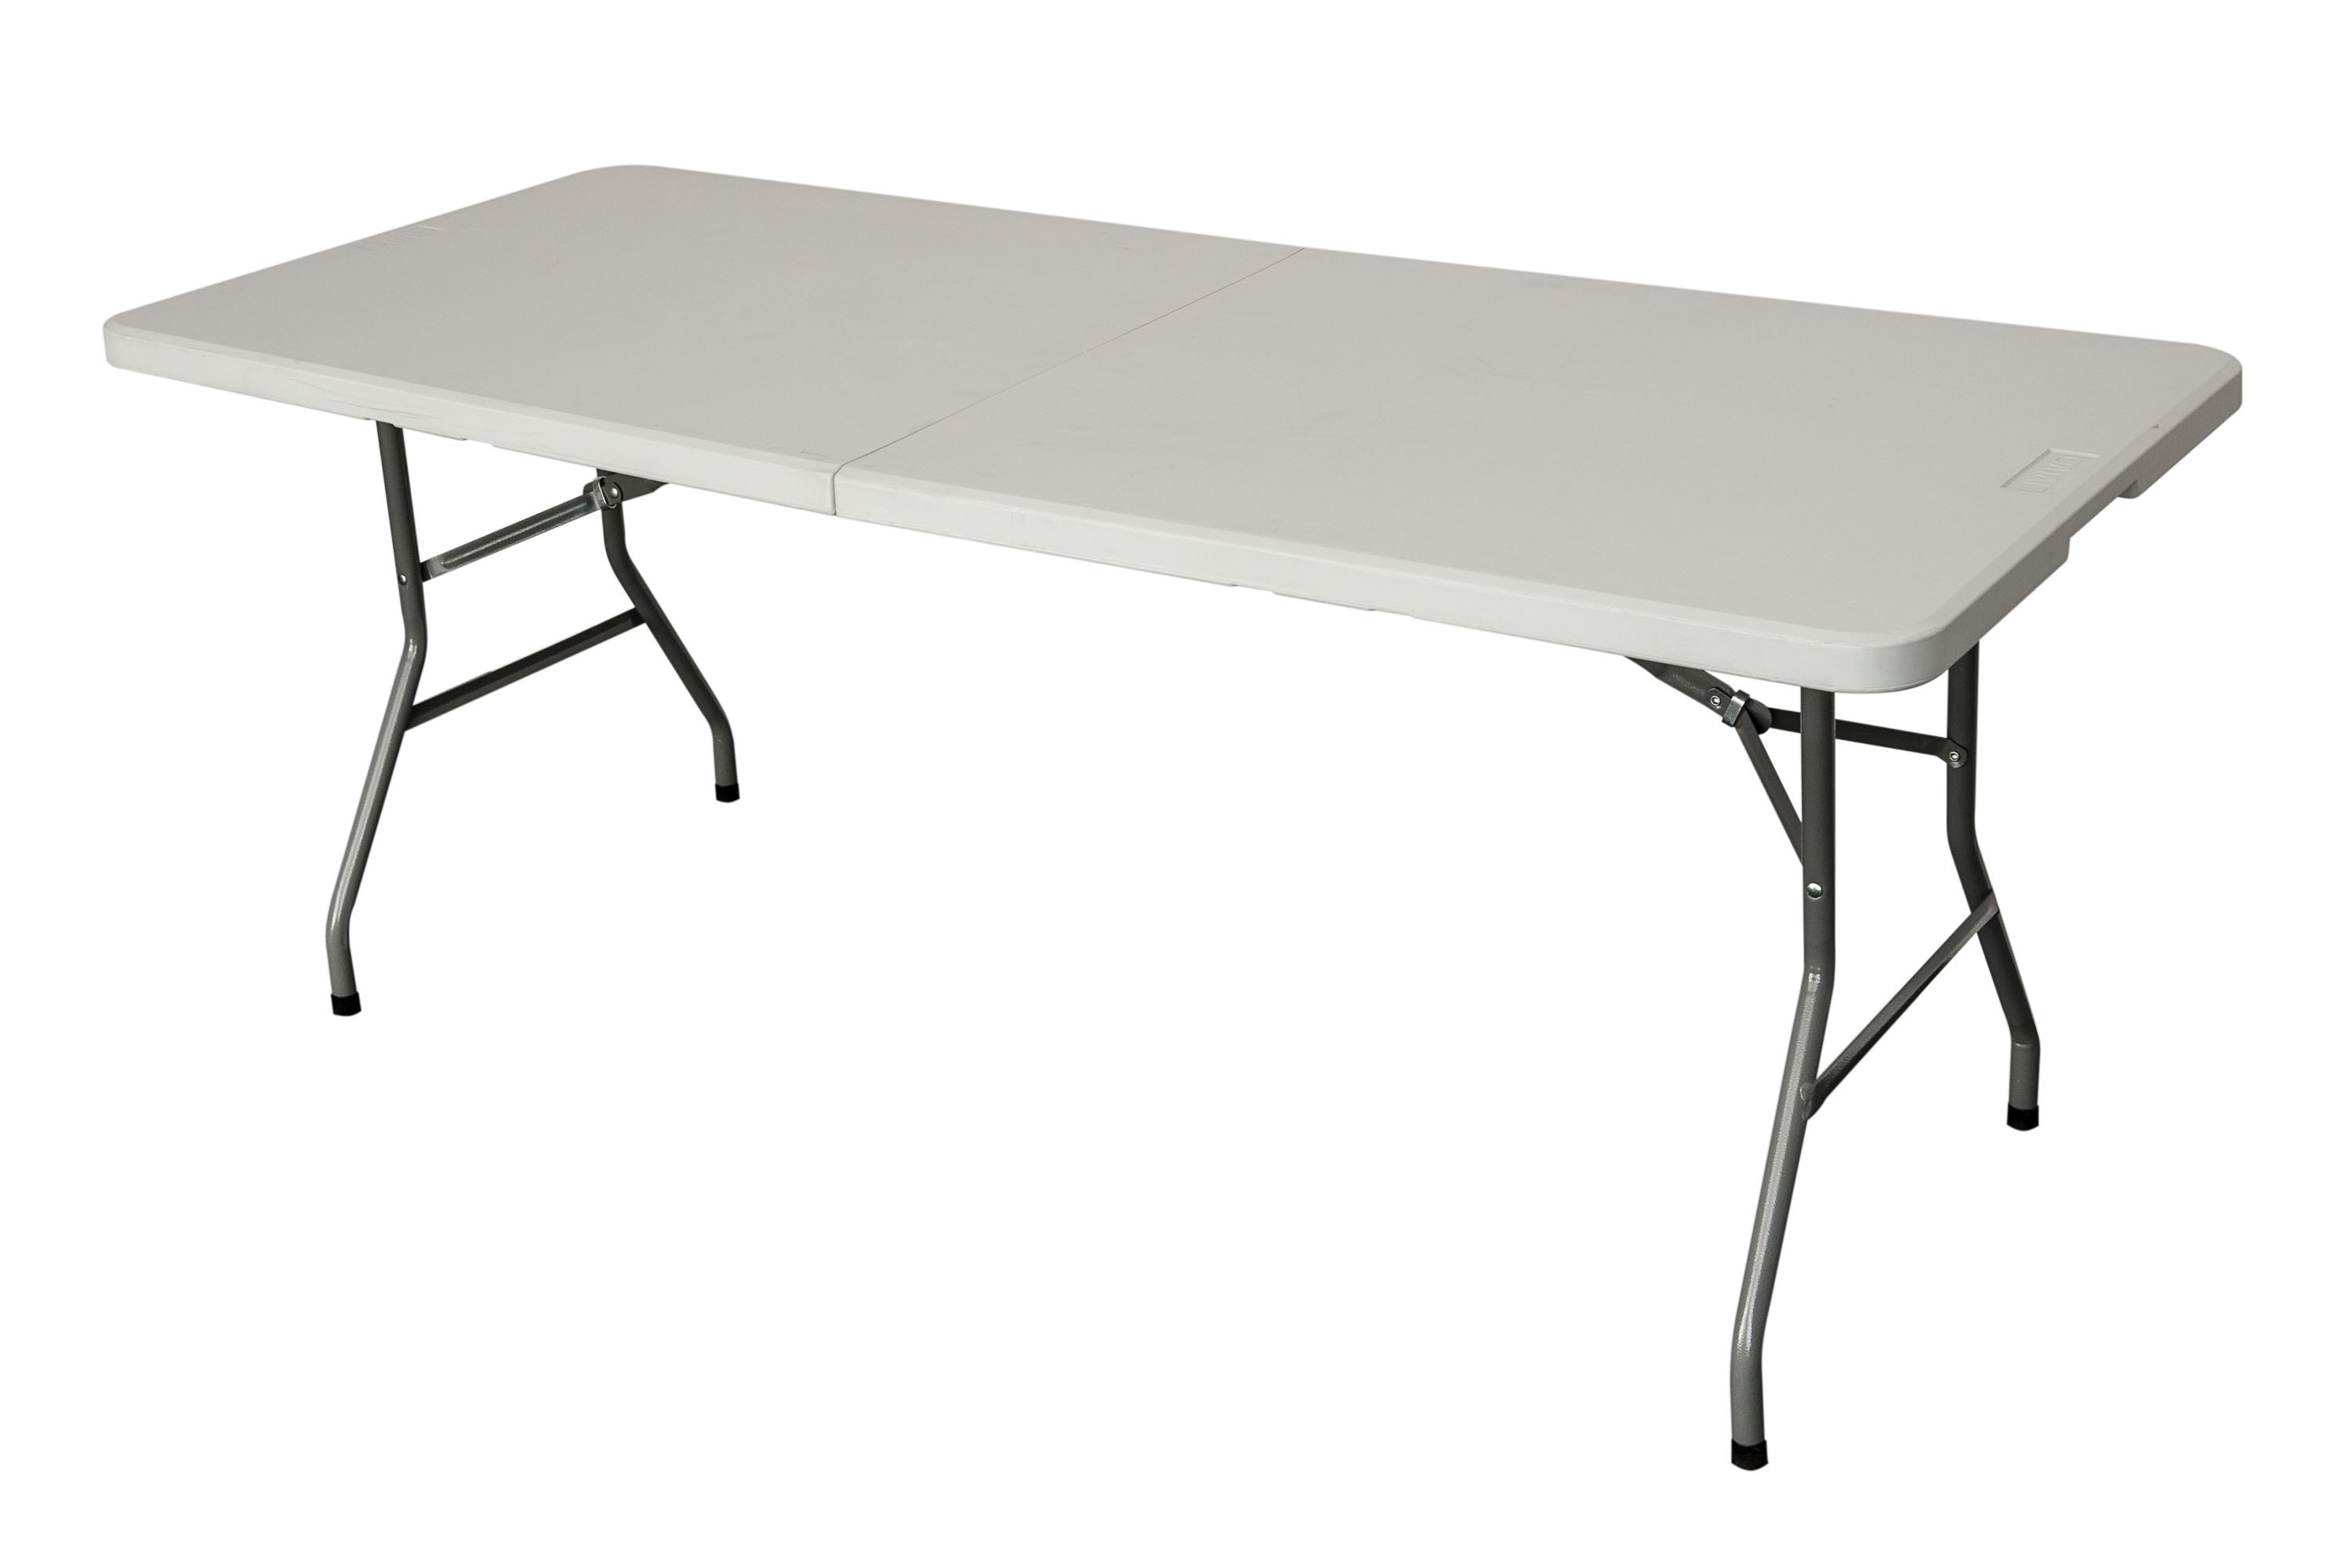 New heavy duty folding table 6 ft camping picnic banquet for Table 6 feet